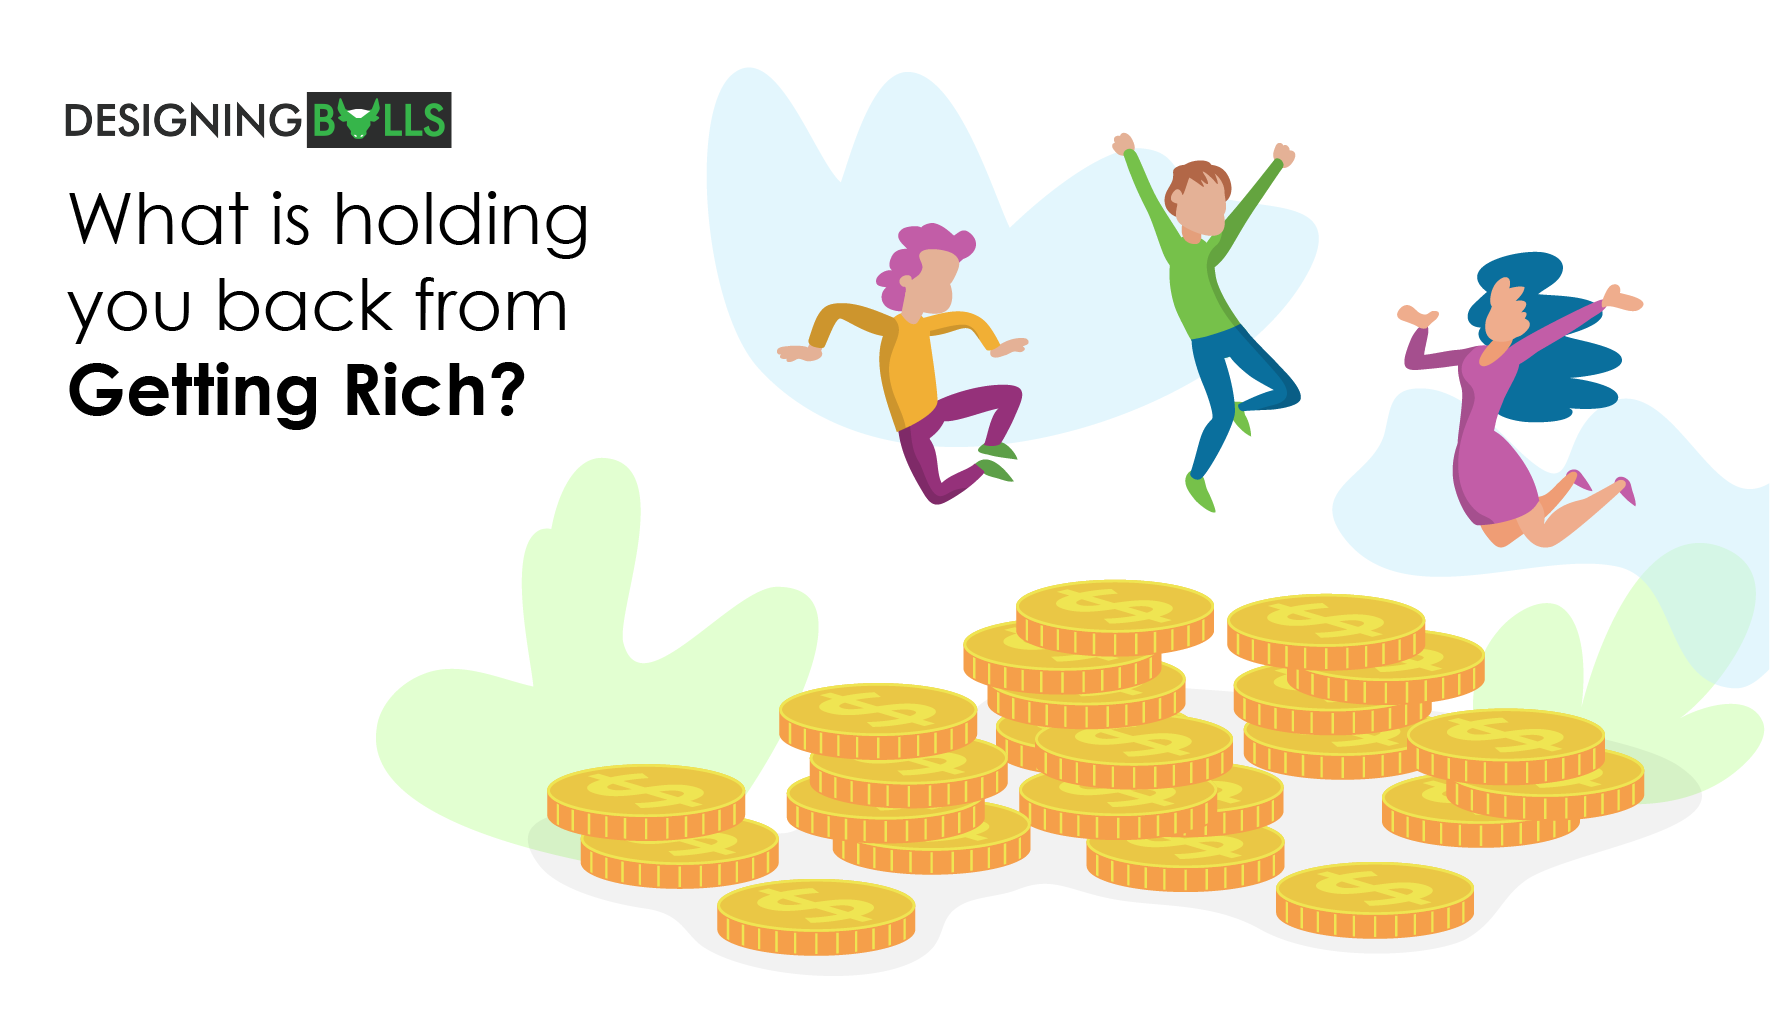 What is holding you back from getting rich?